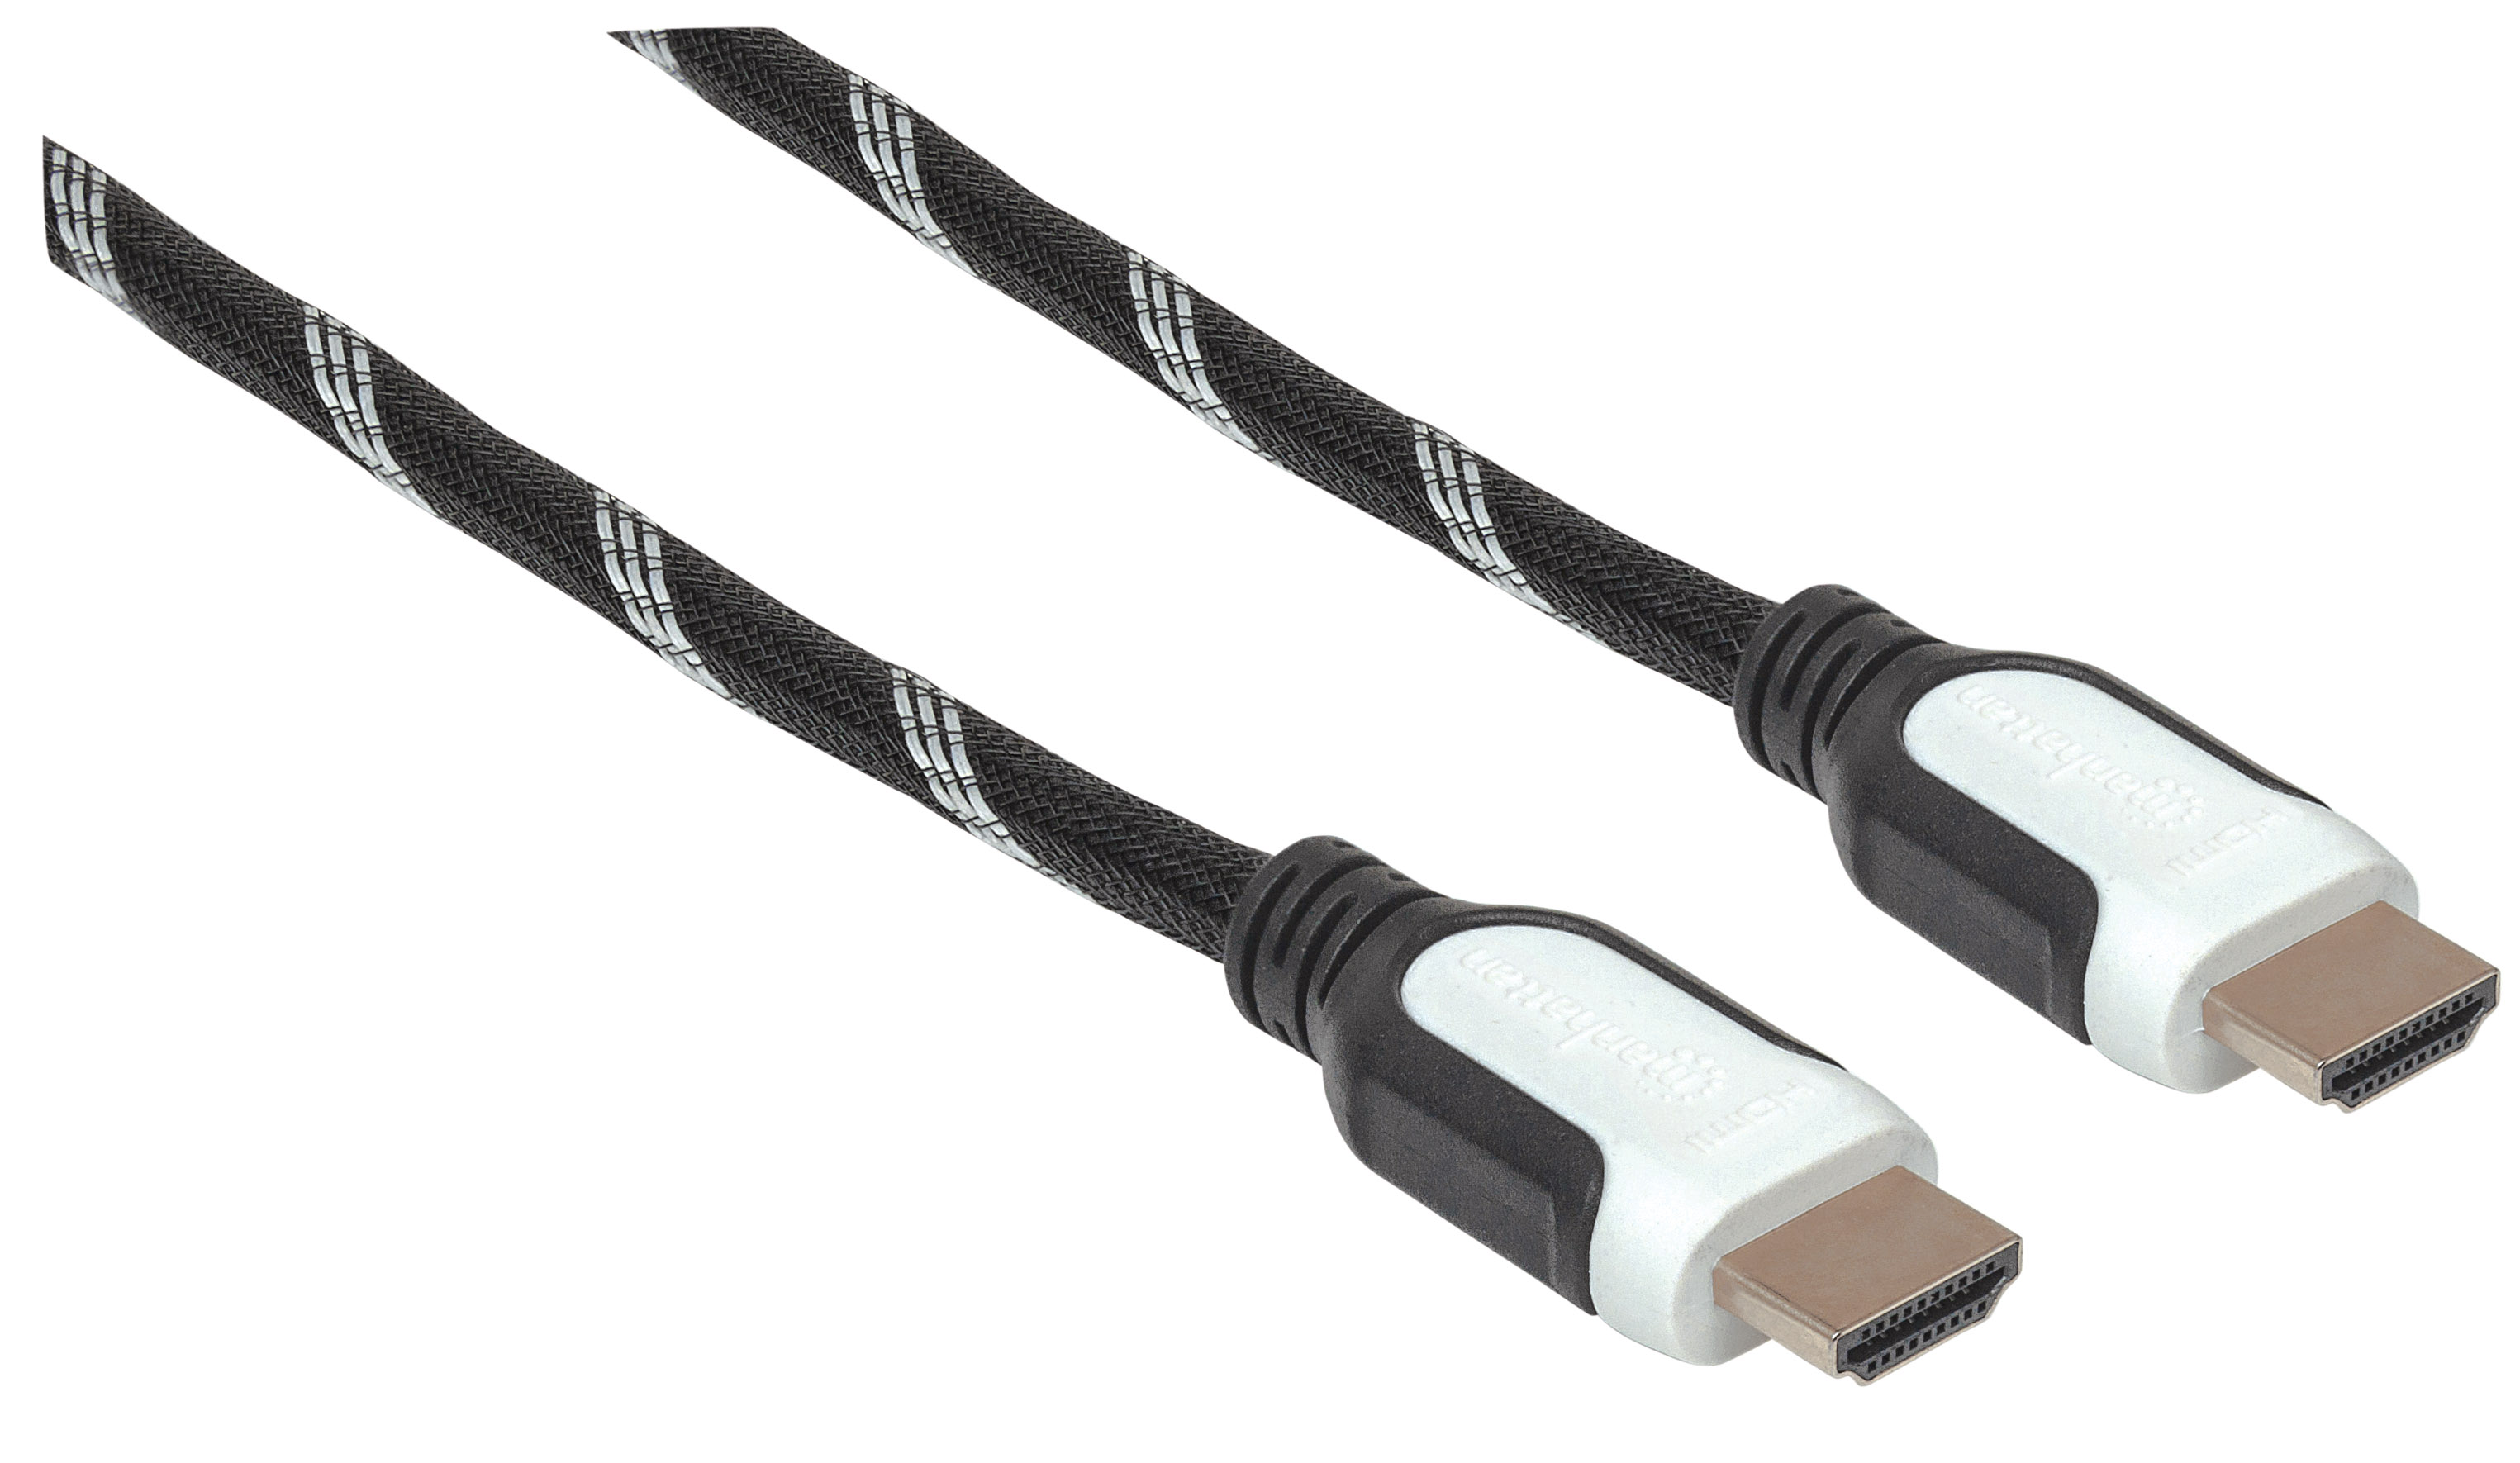 Braided High Speed HDMI Cable with Ethernet